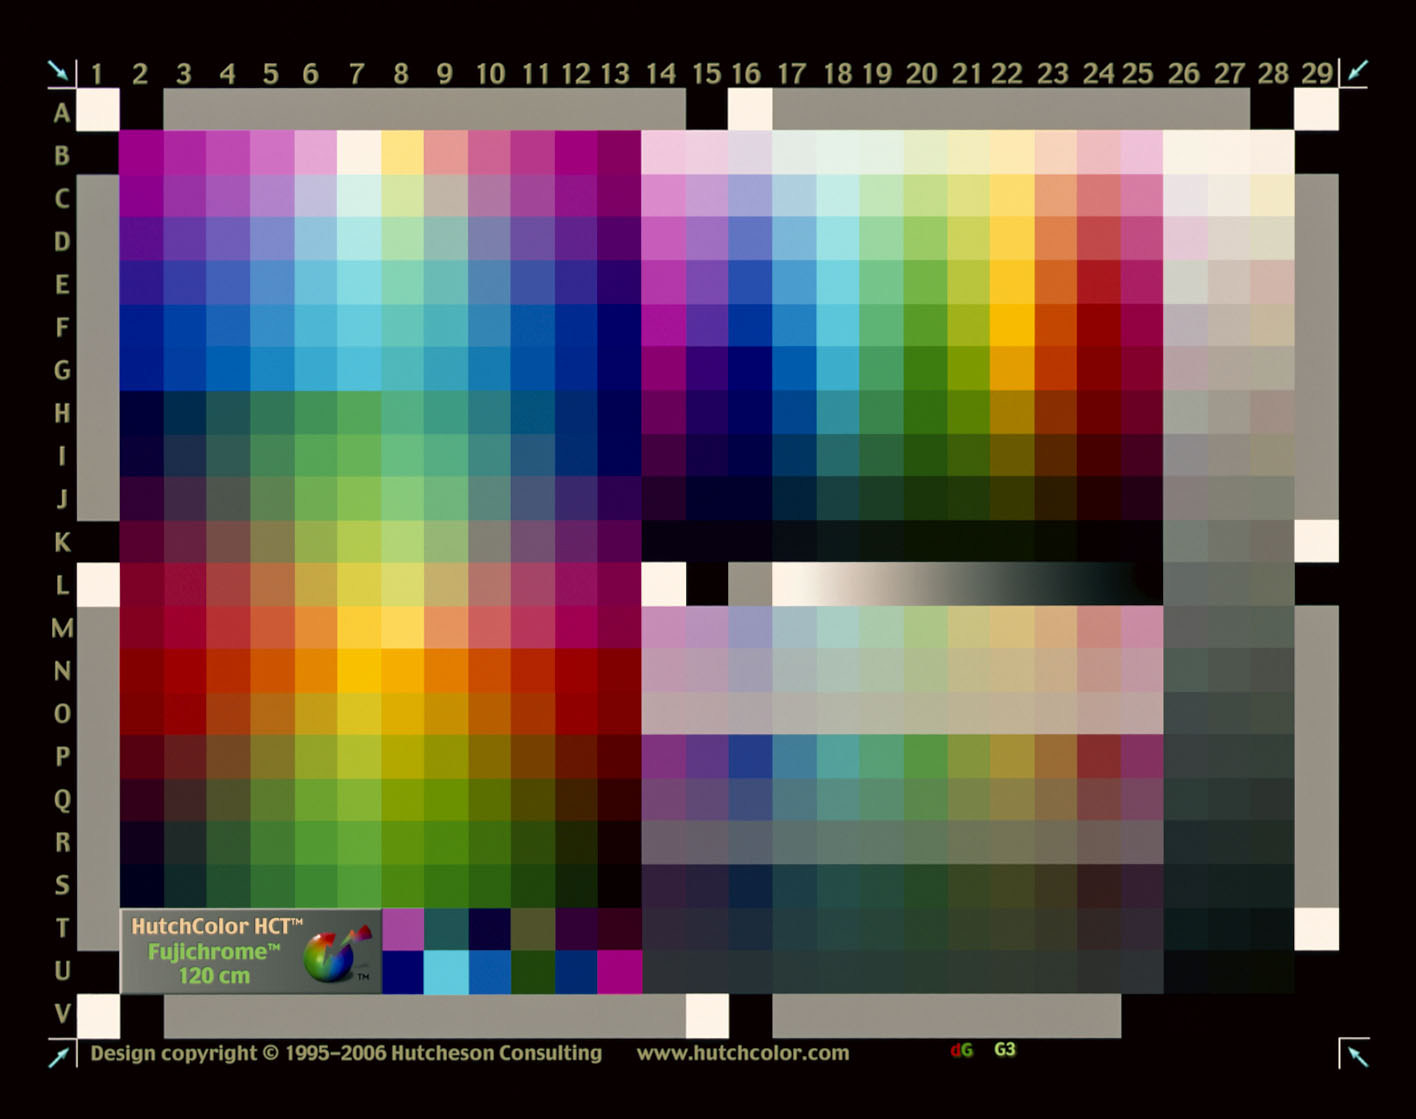 Corrected Color Target - The profile created is applied to the scanned image, correcting the colours. If you compare this image to the original target scan above, you can see the difference, especially in the saturated magentas and cyans (important for scanning colour negatives).